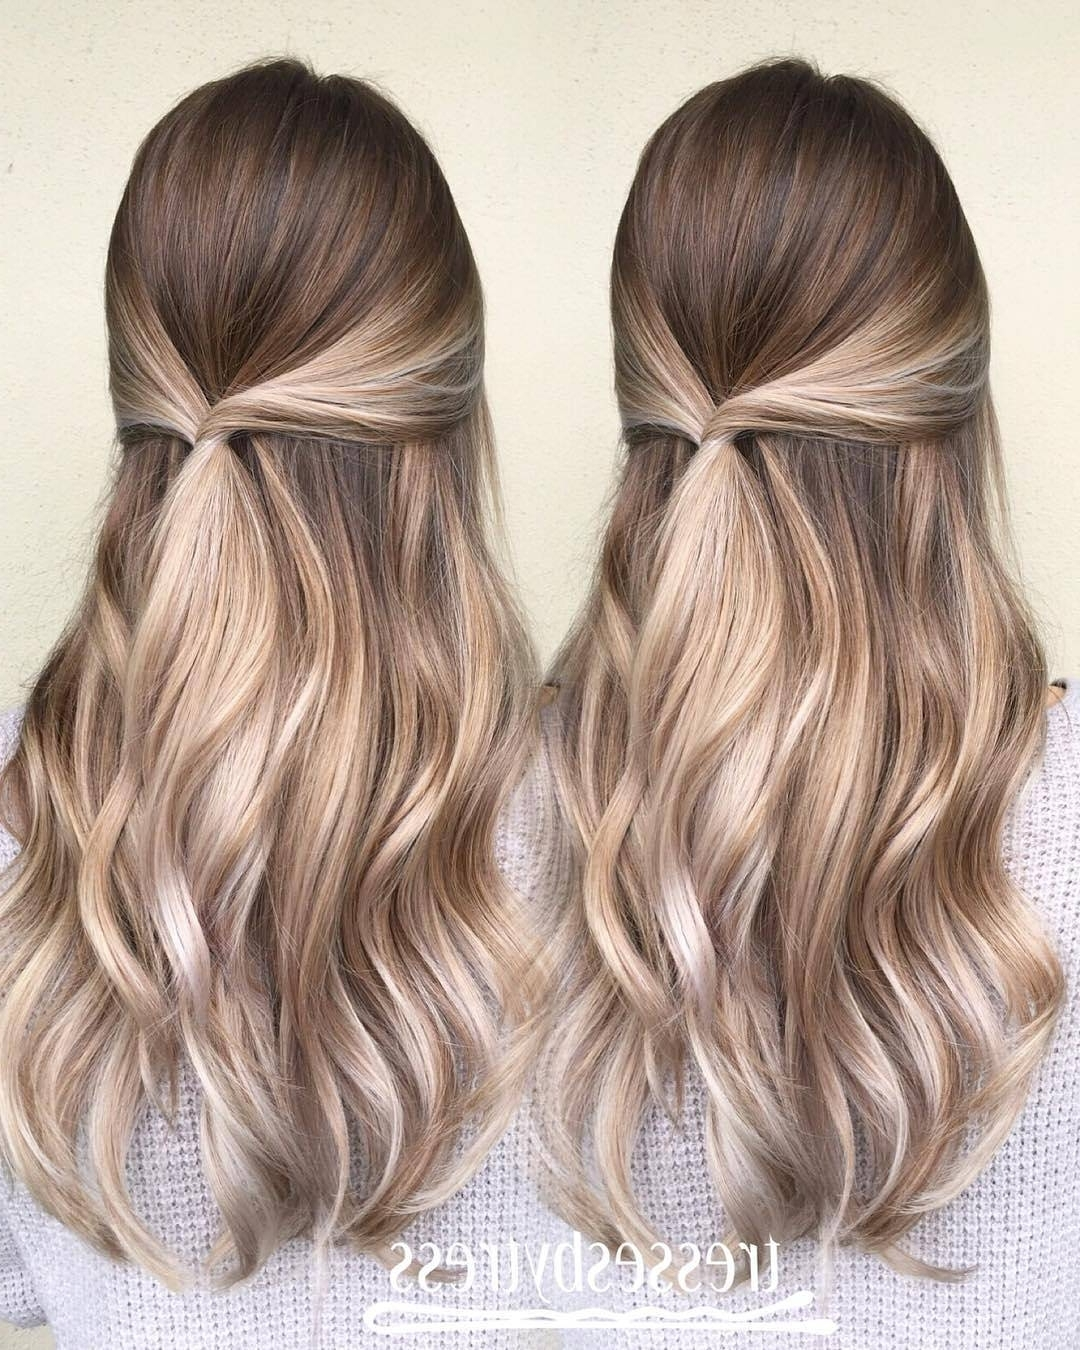 Most Popular Beige Balayage For Light Brown Hair Within 10 Blonde Balayage Hair Color Ideas In Beige Gold Silver & Ash (View 12 of 20)